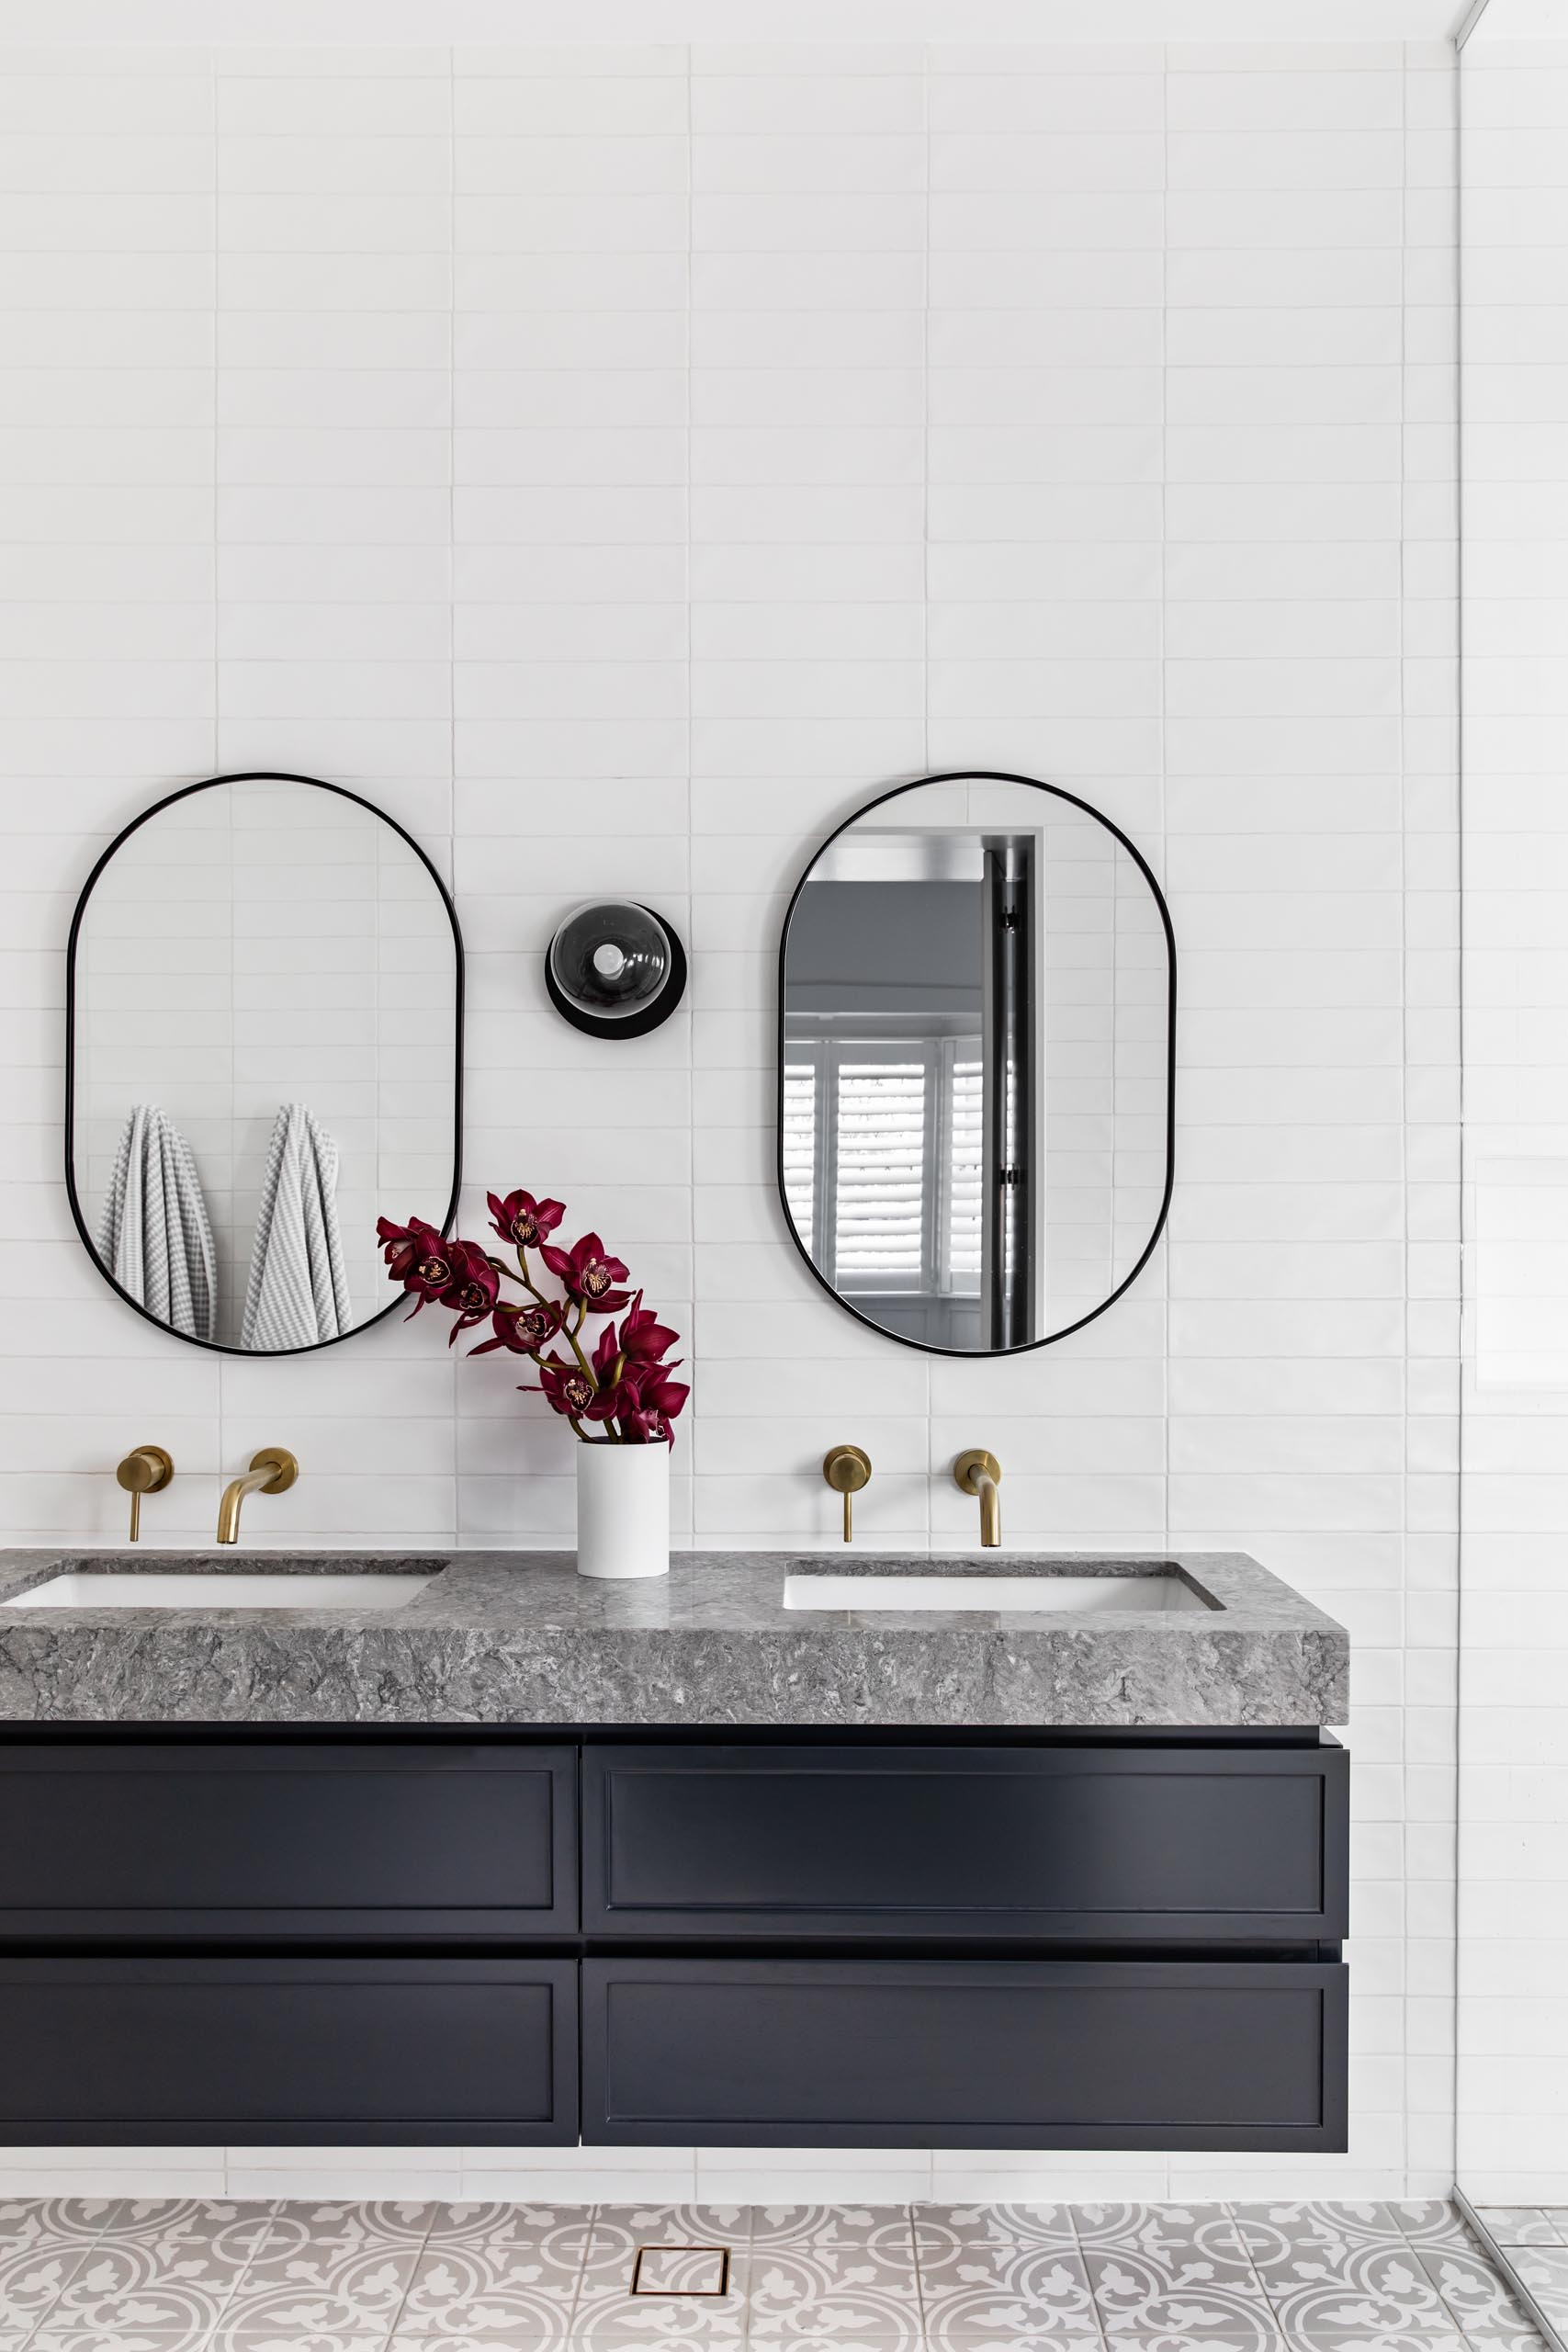 A modern bathroom with patterned floor tiles, a floating black vanity topped with grey stone, white subway tiles that cover the walls, oval black-framed mirrors, and brass hardware